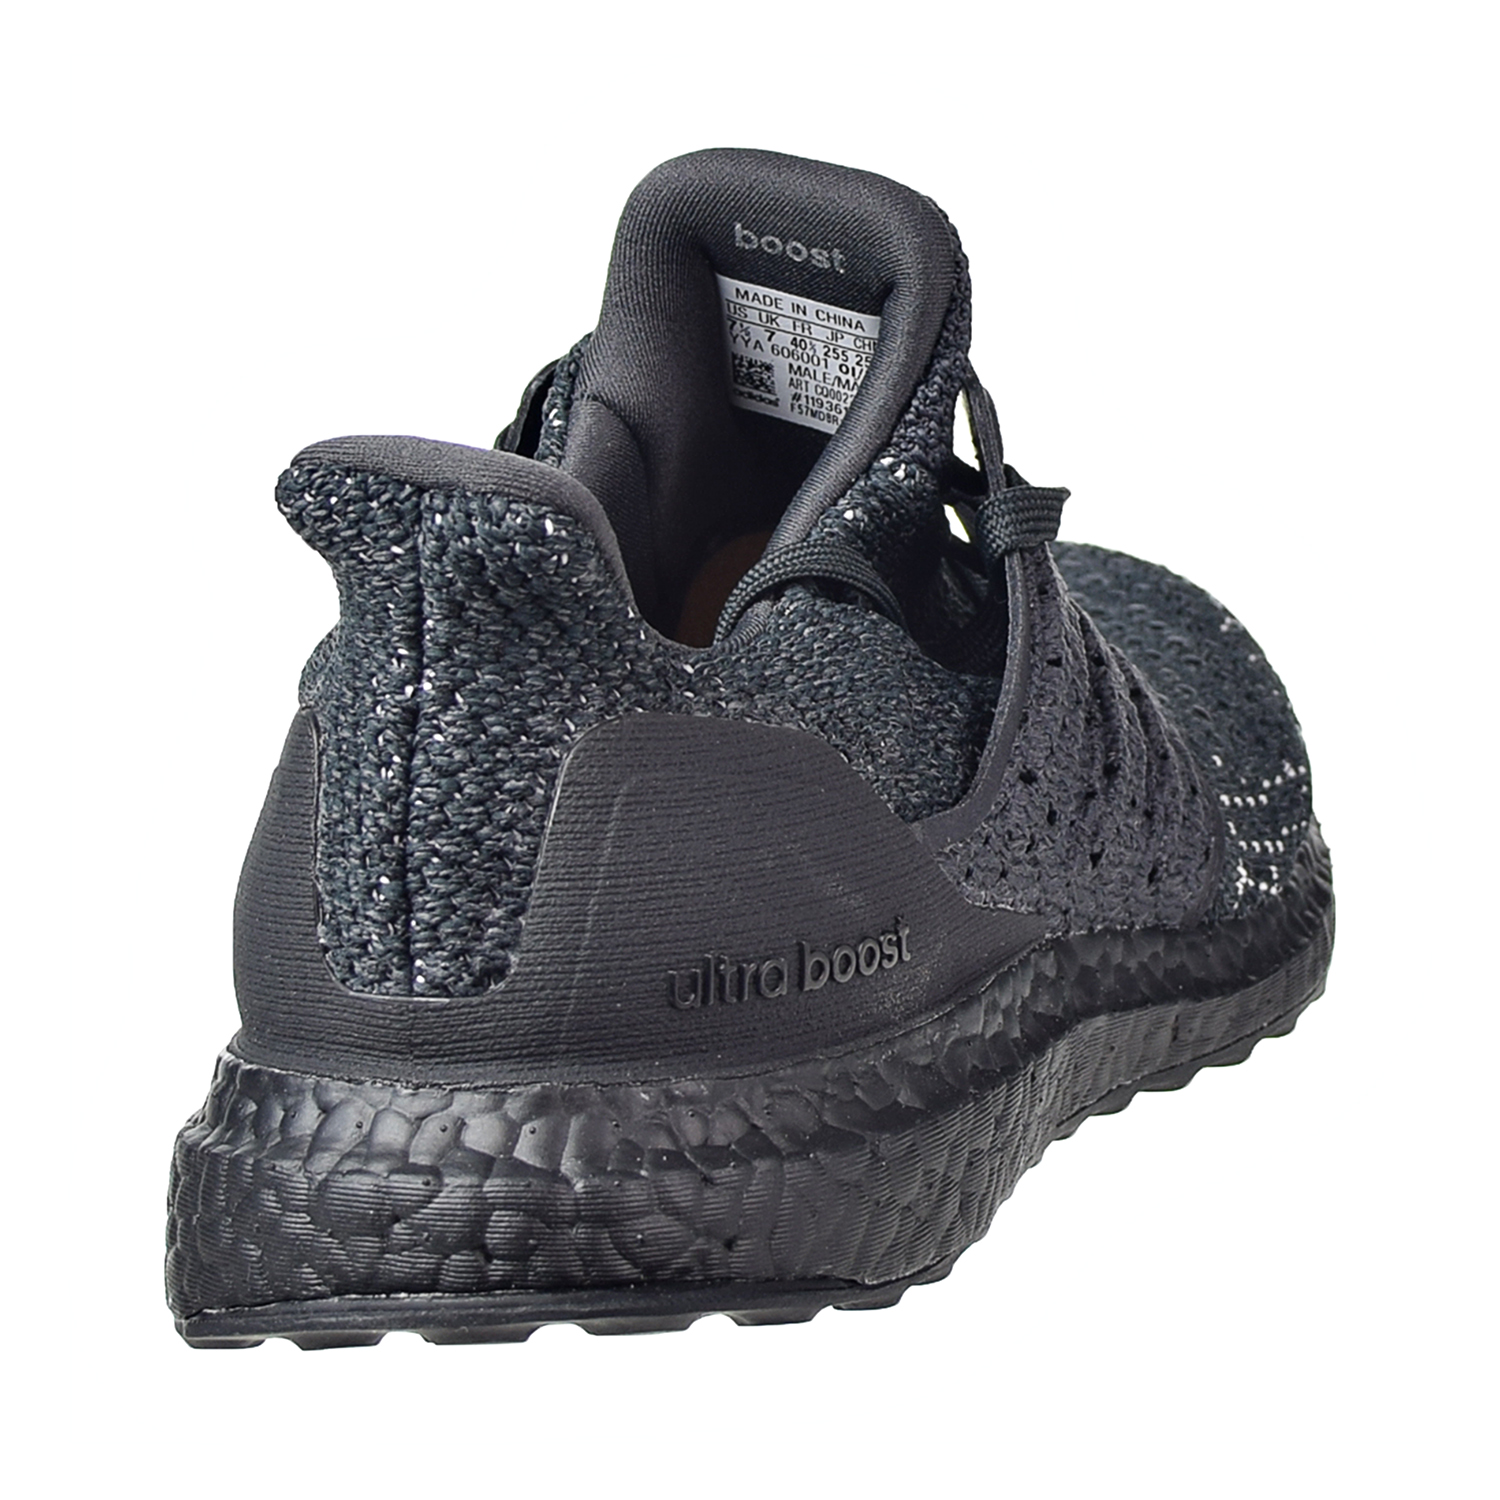 cfdcd45830a27 Adidas Ultra Boost Clima Men s Running Shoes Carbon Carbon Orchid Tint  cq0022